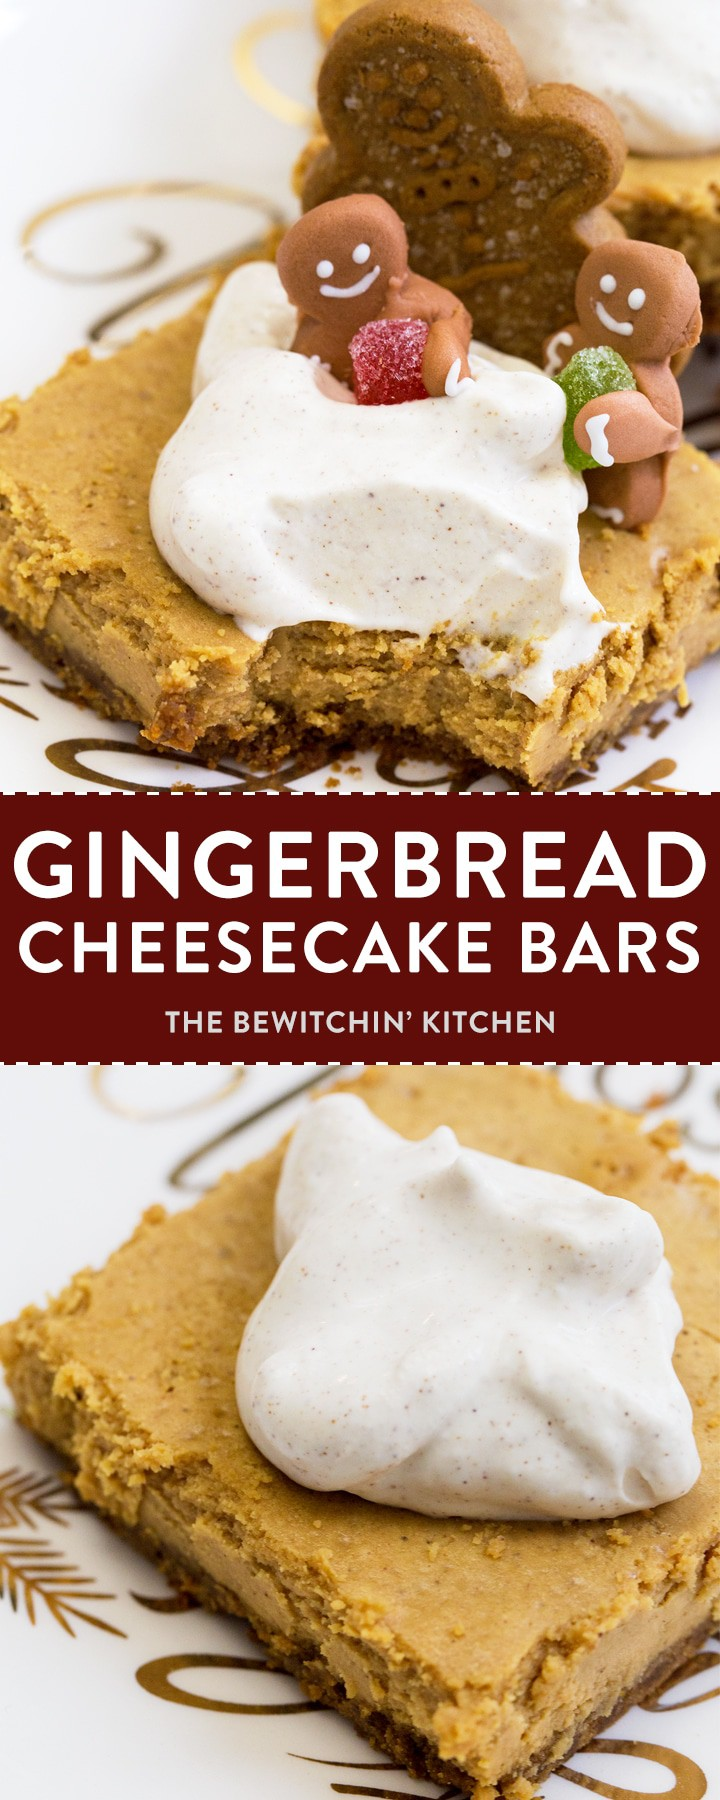 Gingerbread Cheesecake Bars | The Bewitchin' Kitchen